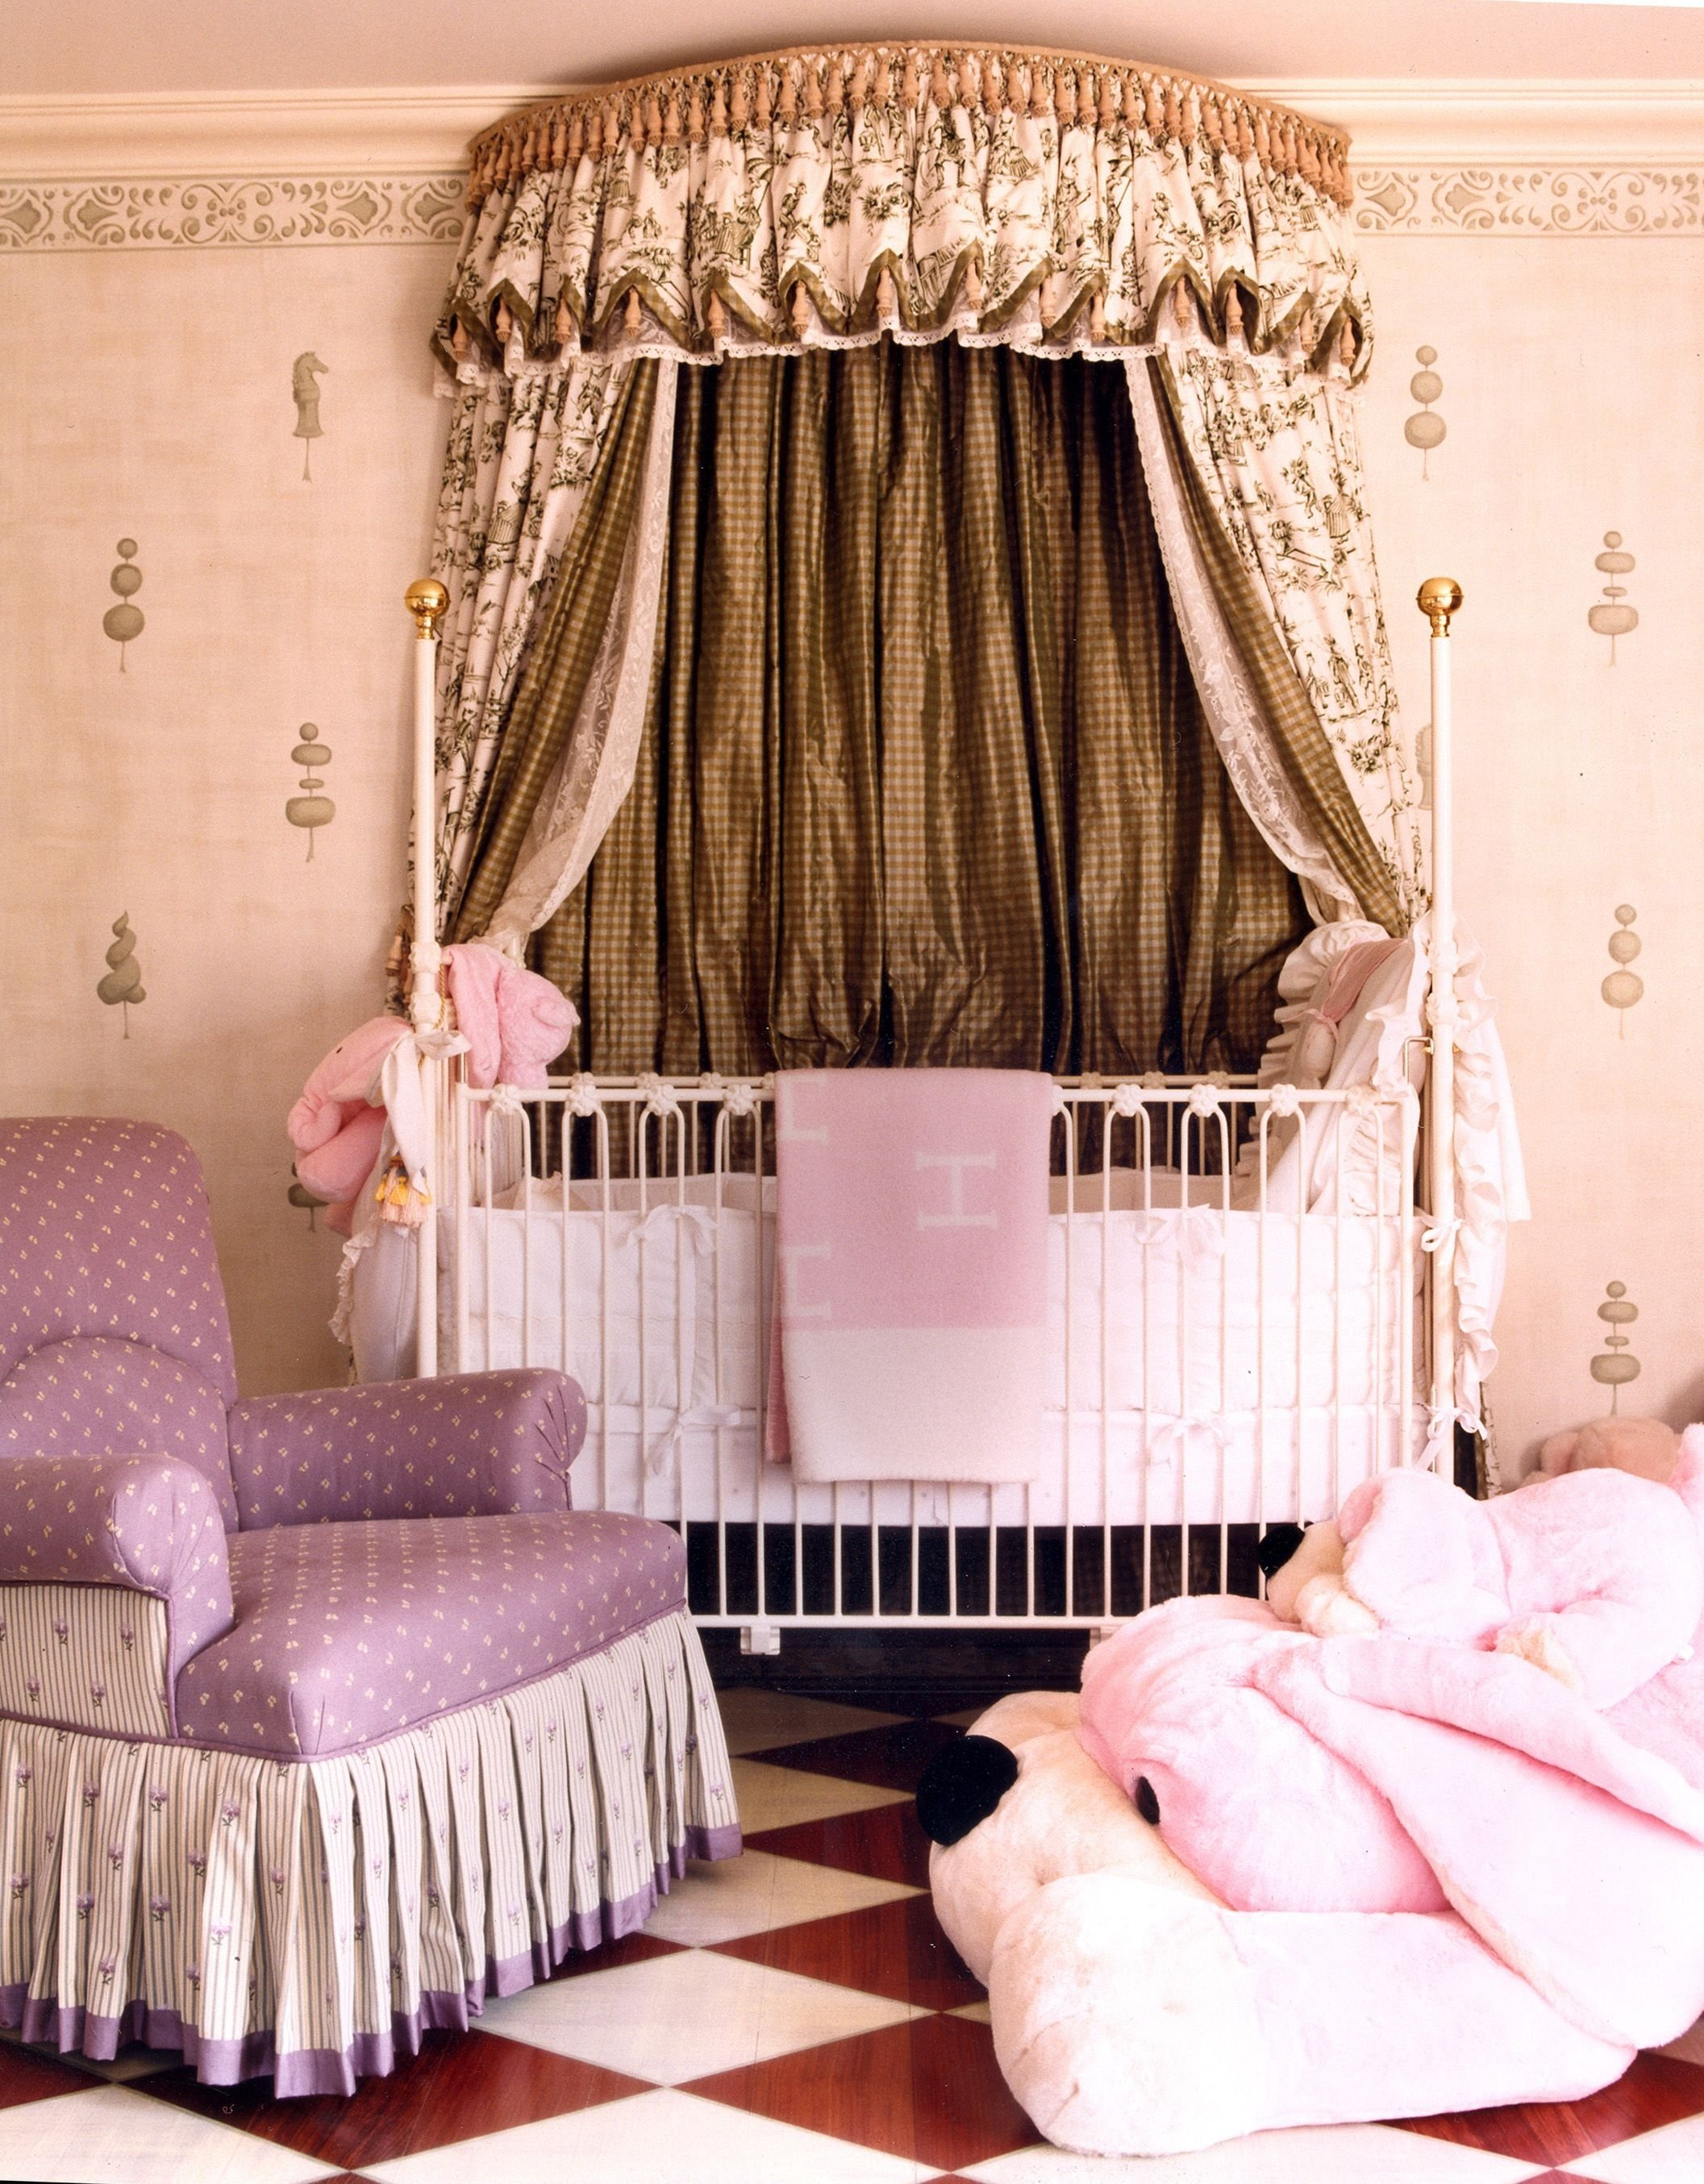 10 Cute Baby Room Ideas For A Girl 7 cute baby girl rooms nursery decorating ideas for baby girls 2020